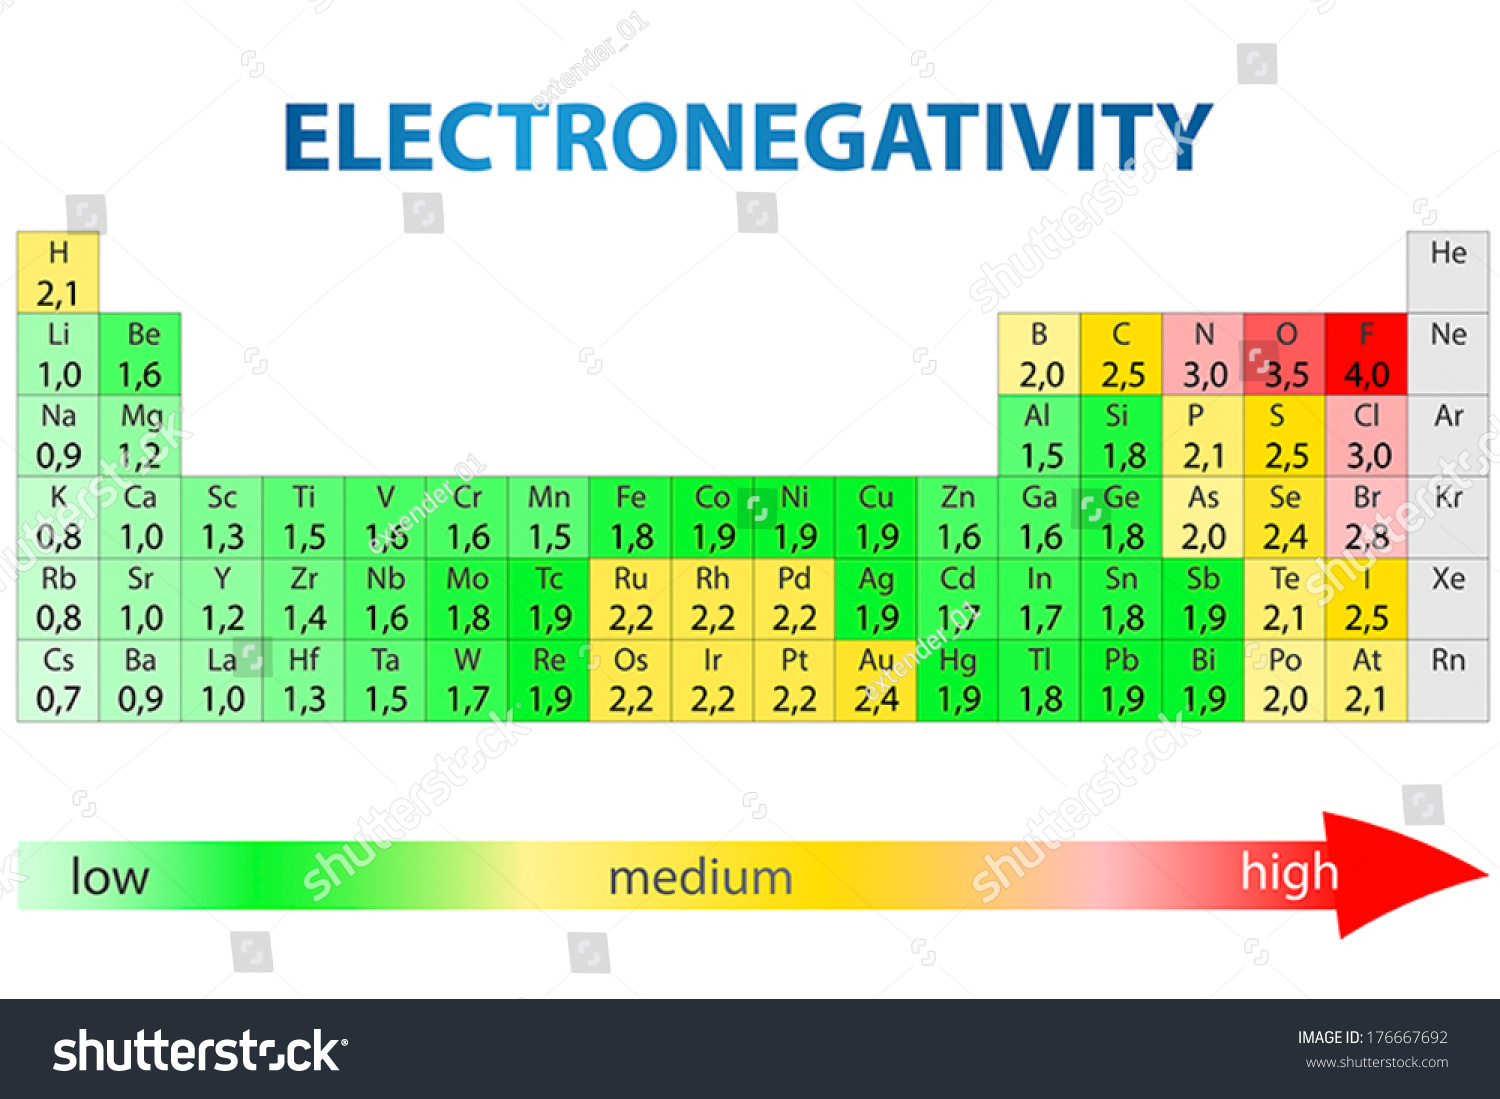 Periodic table elements electronegativity values stock vector periodic table of elements with electronegativity values urtaz Gallery